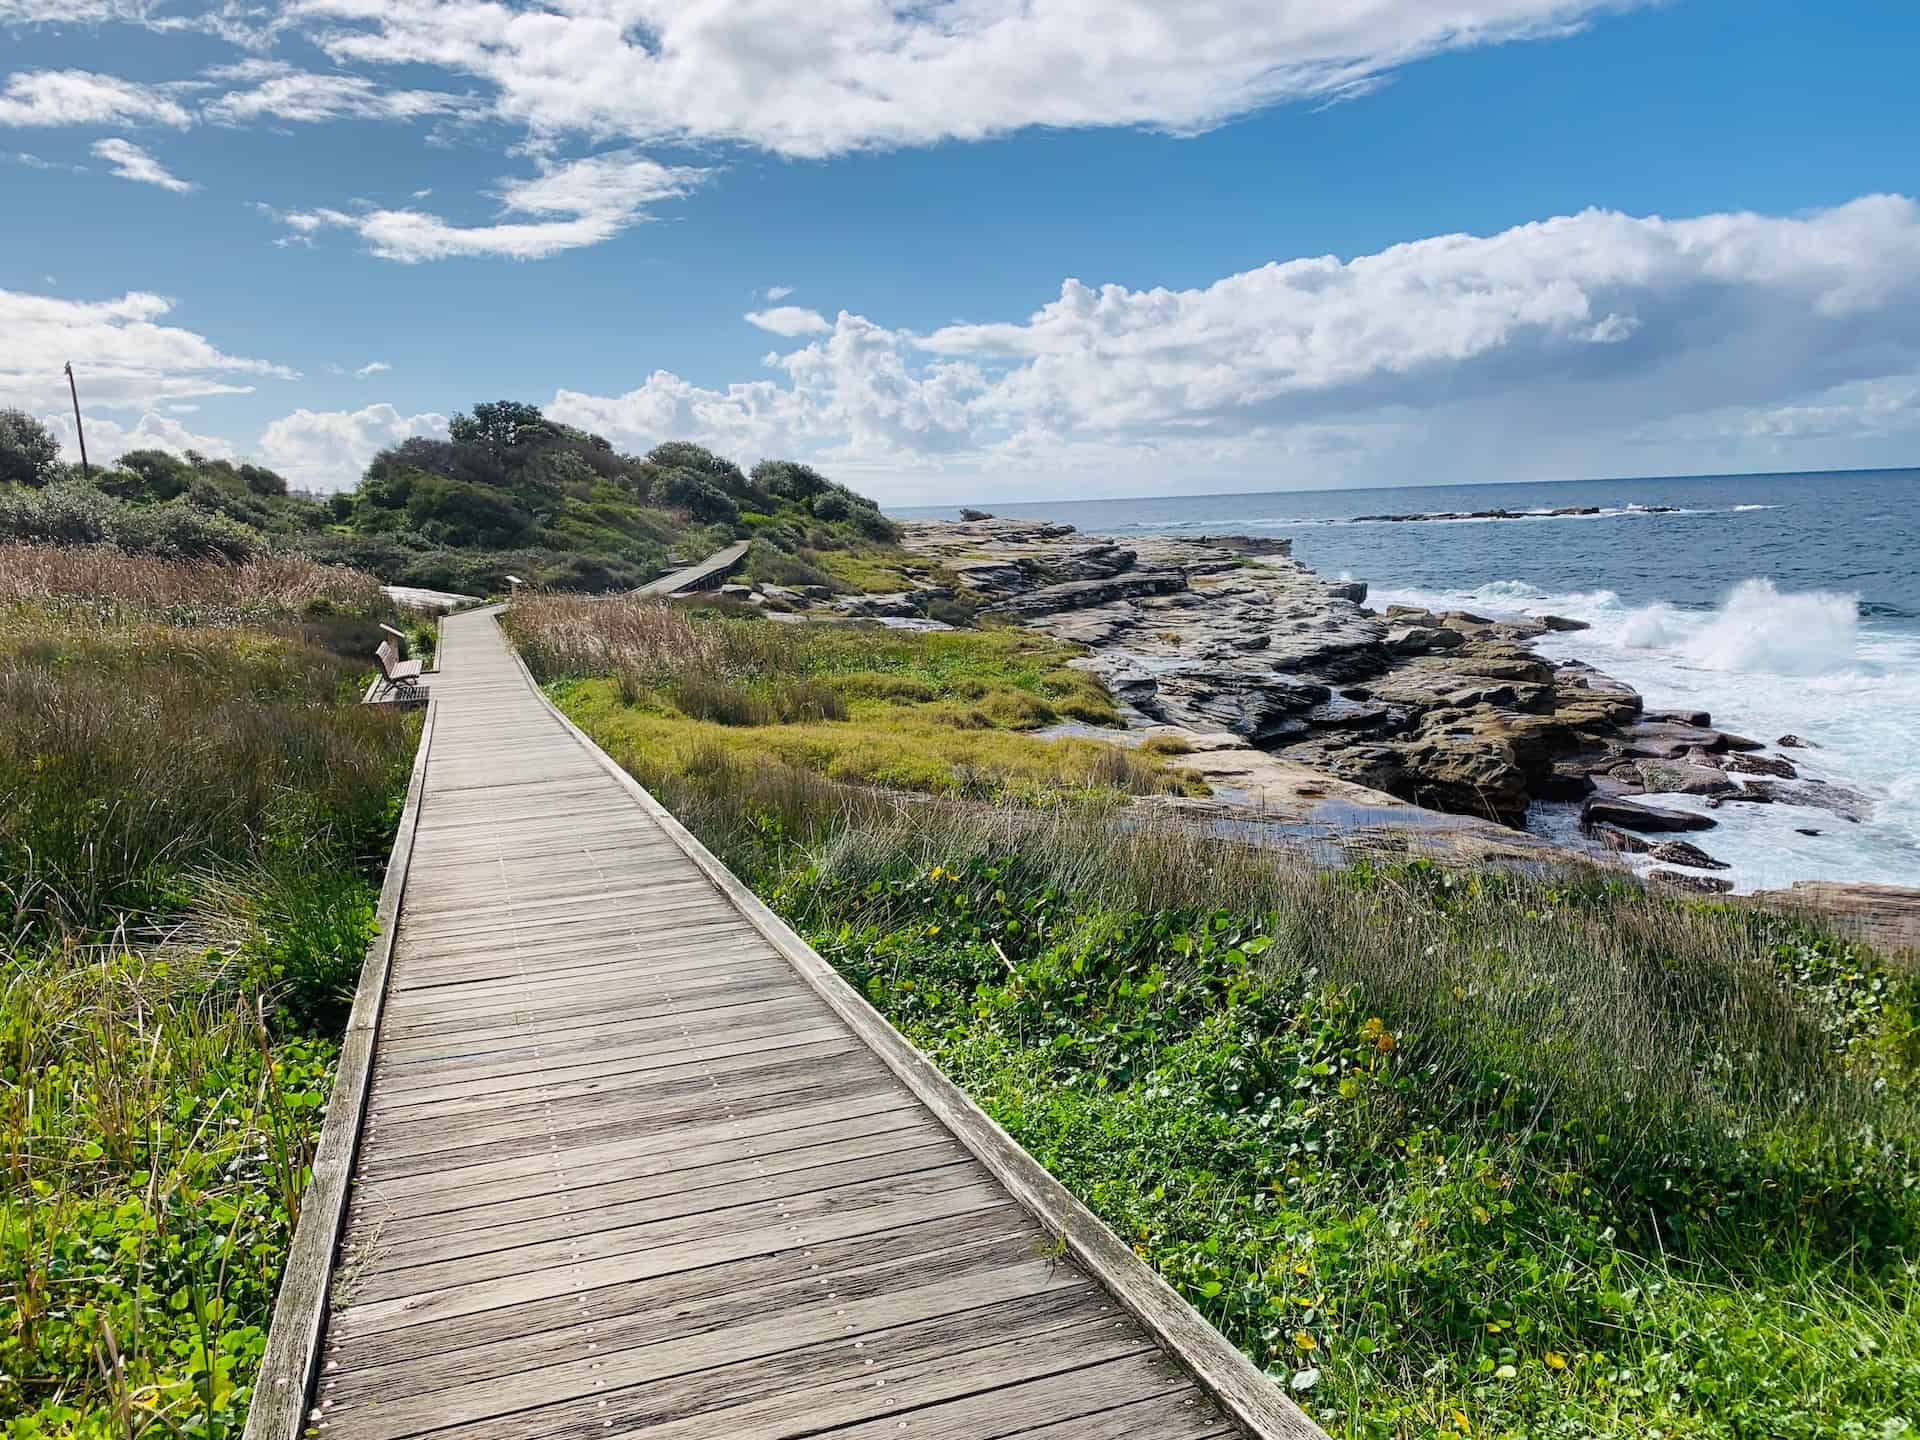 The Coogee to Maroubra Walk